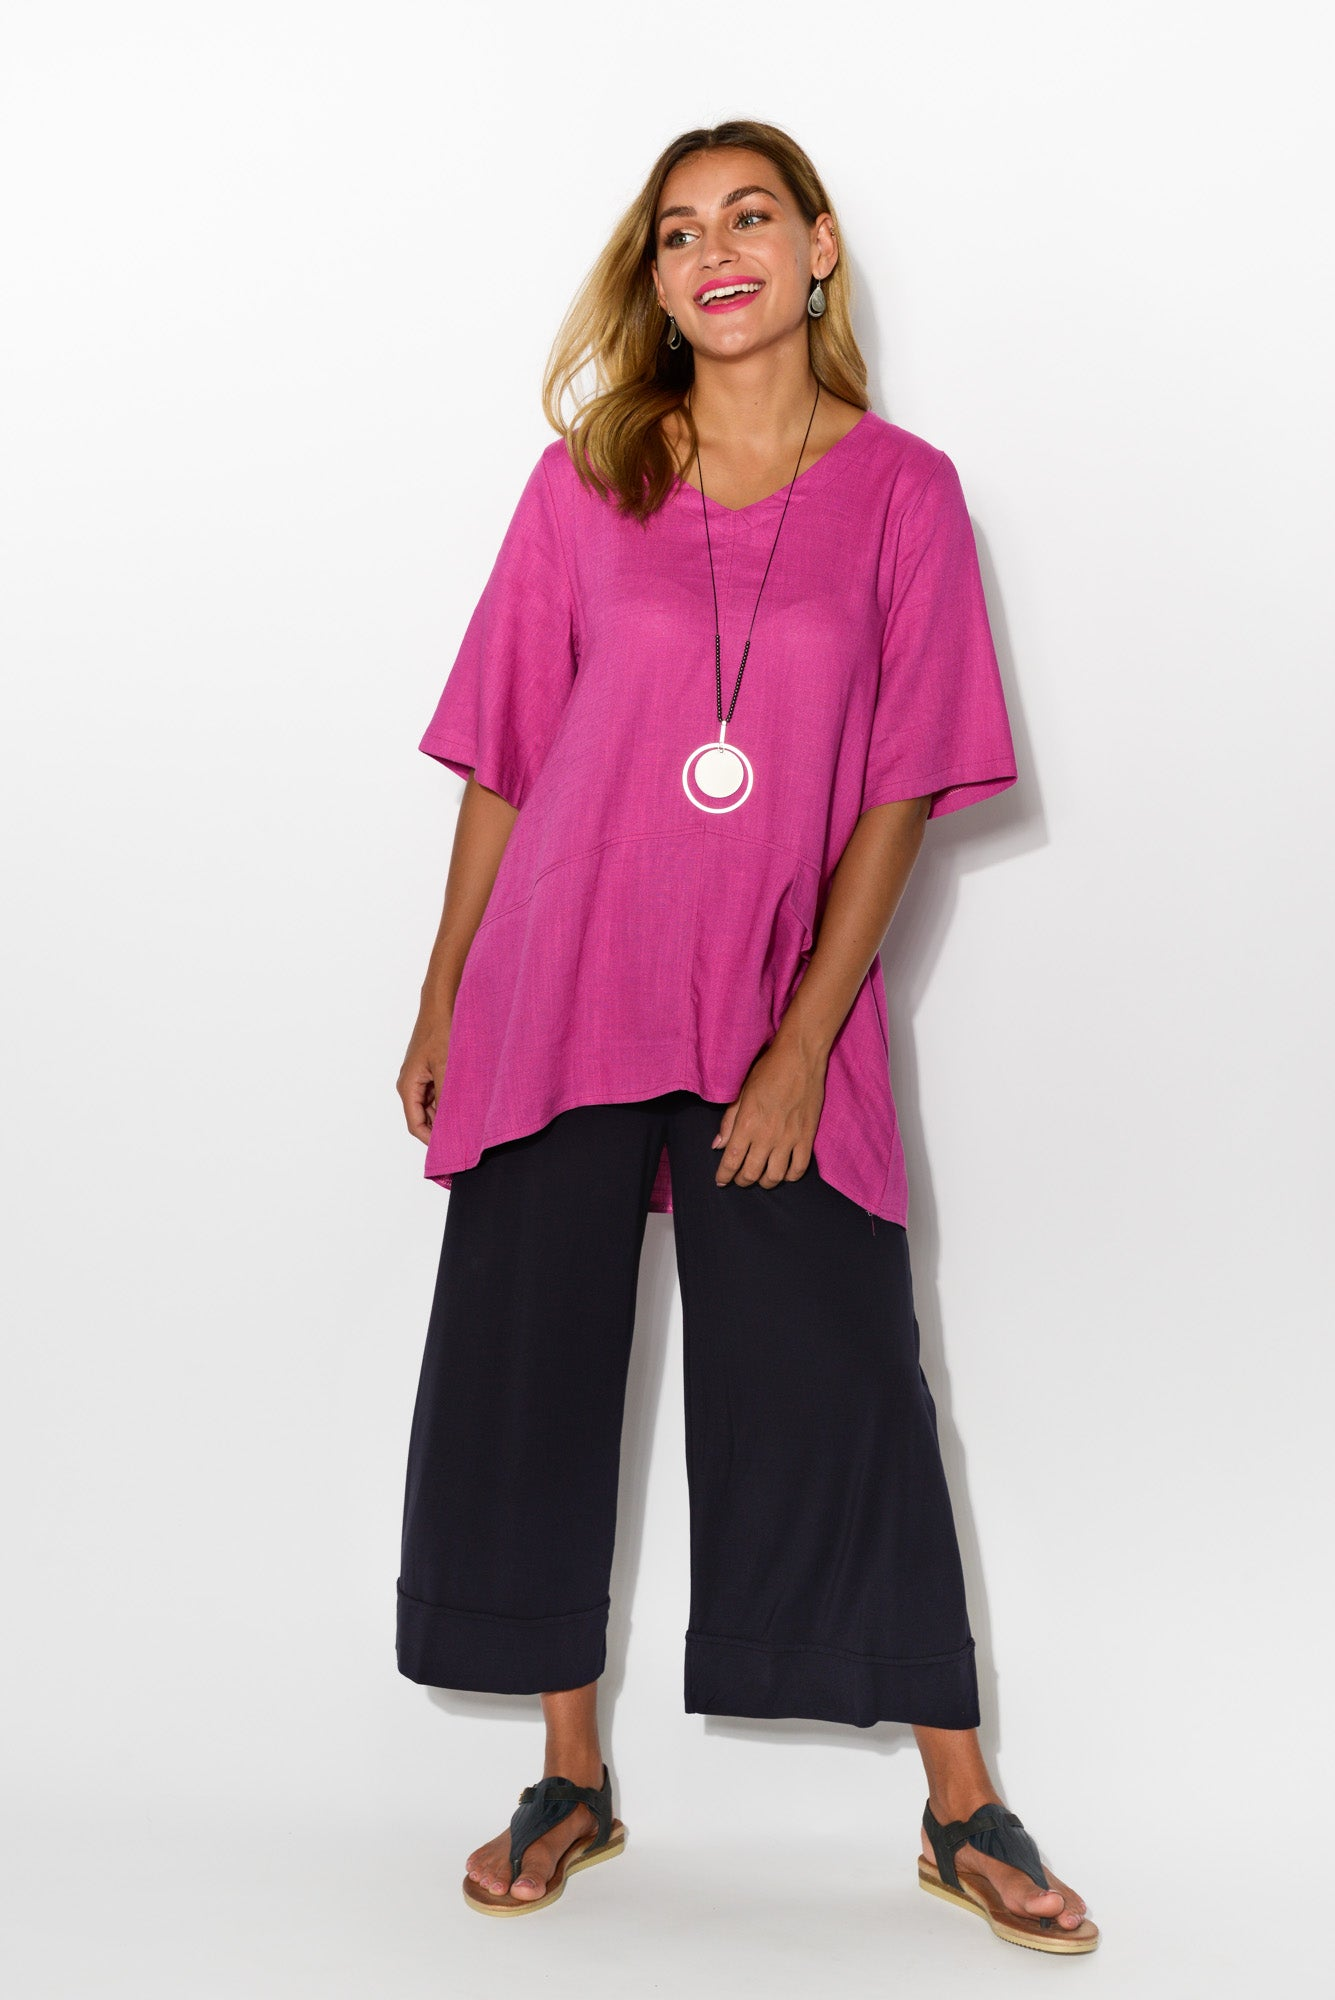 Neptune Purple Linen Cotton Top - Blue Bungalow